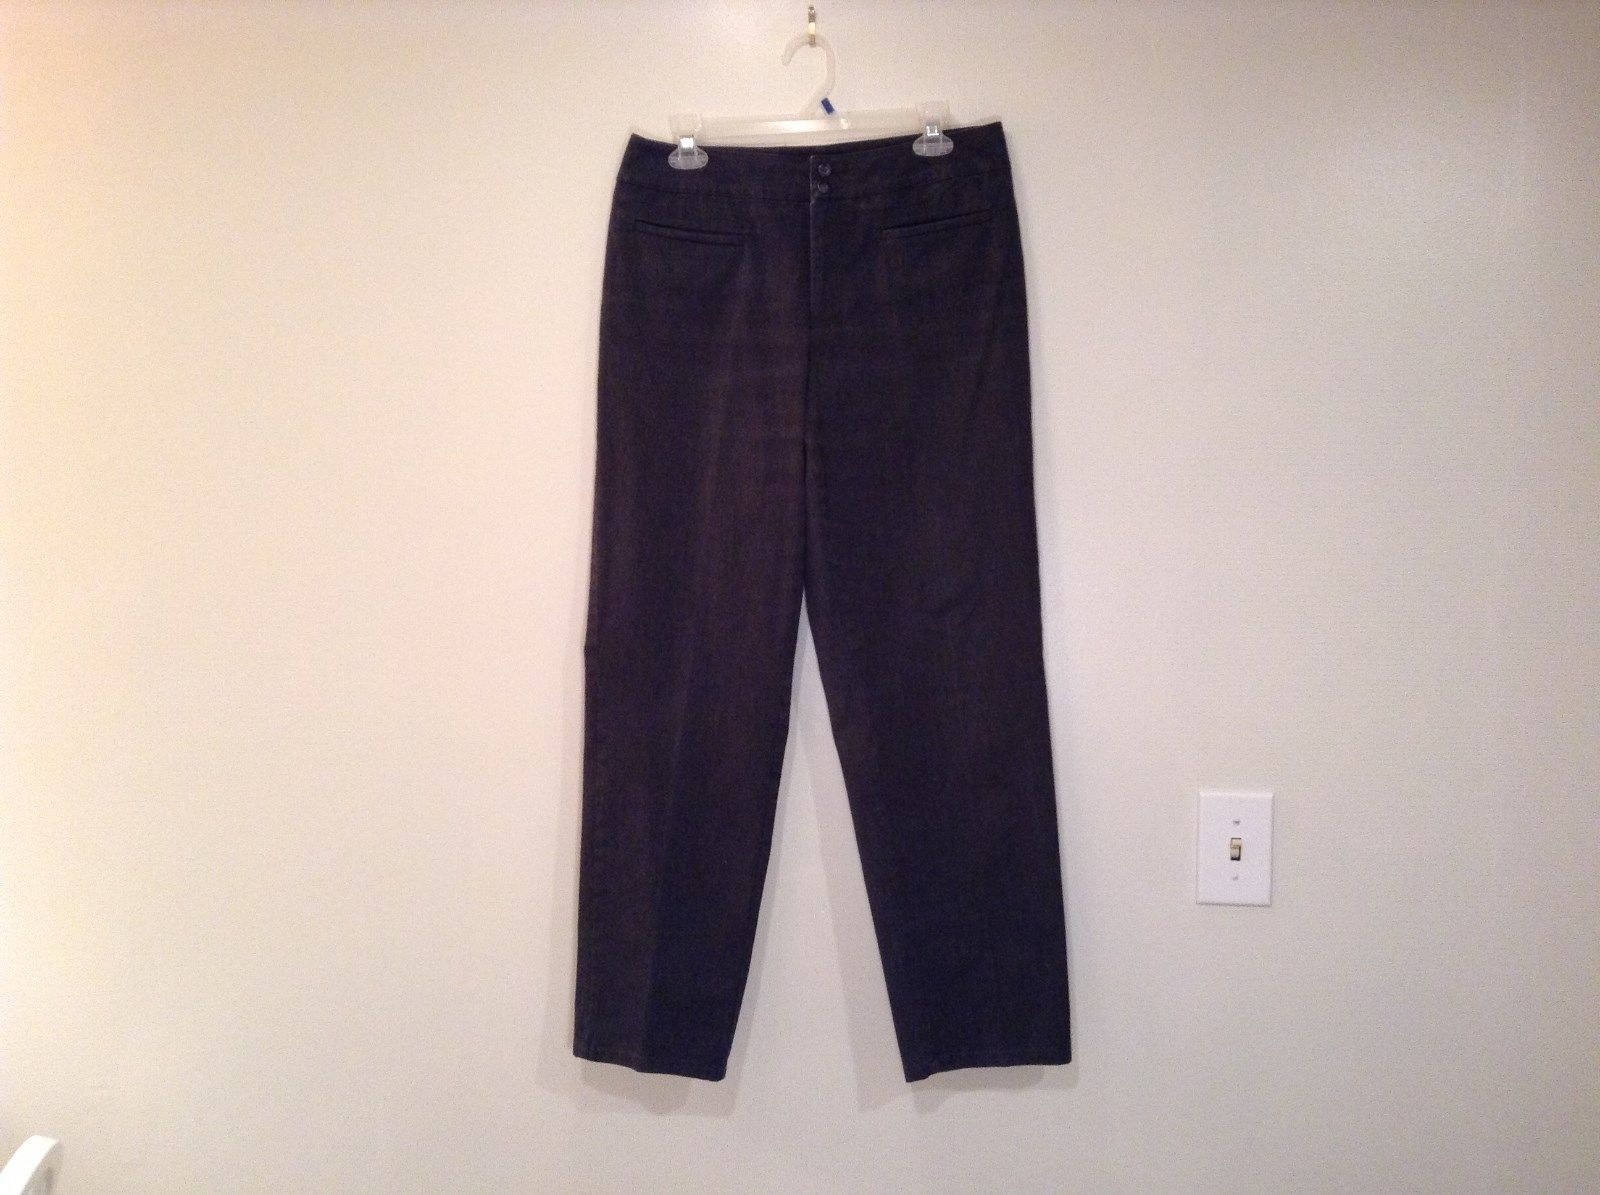 Covington Size 12 Dark Gray Stretch Casual Pants Pockets Excellent Condition